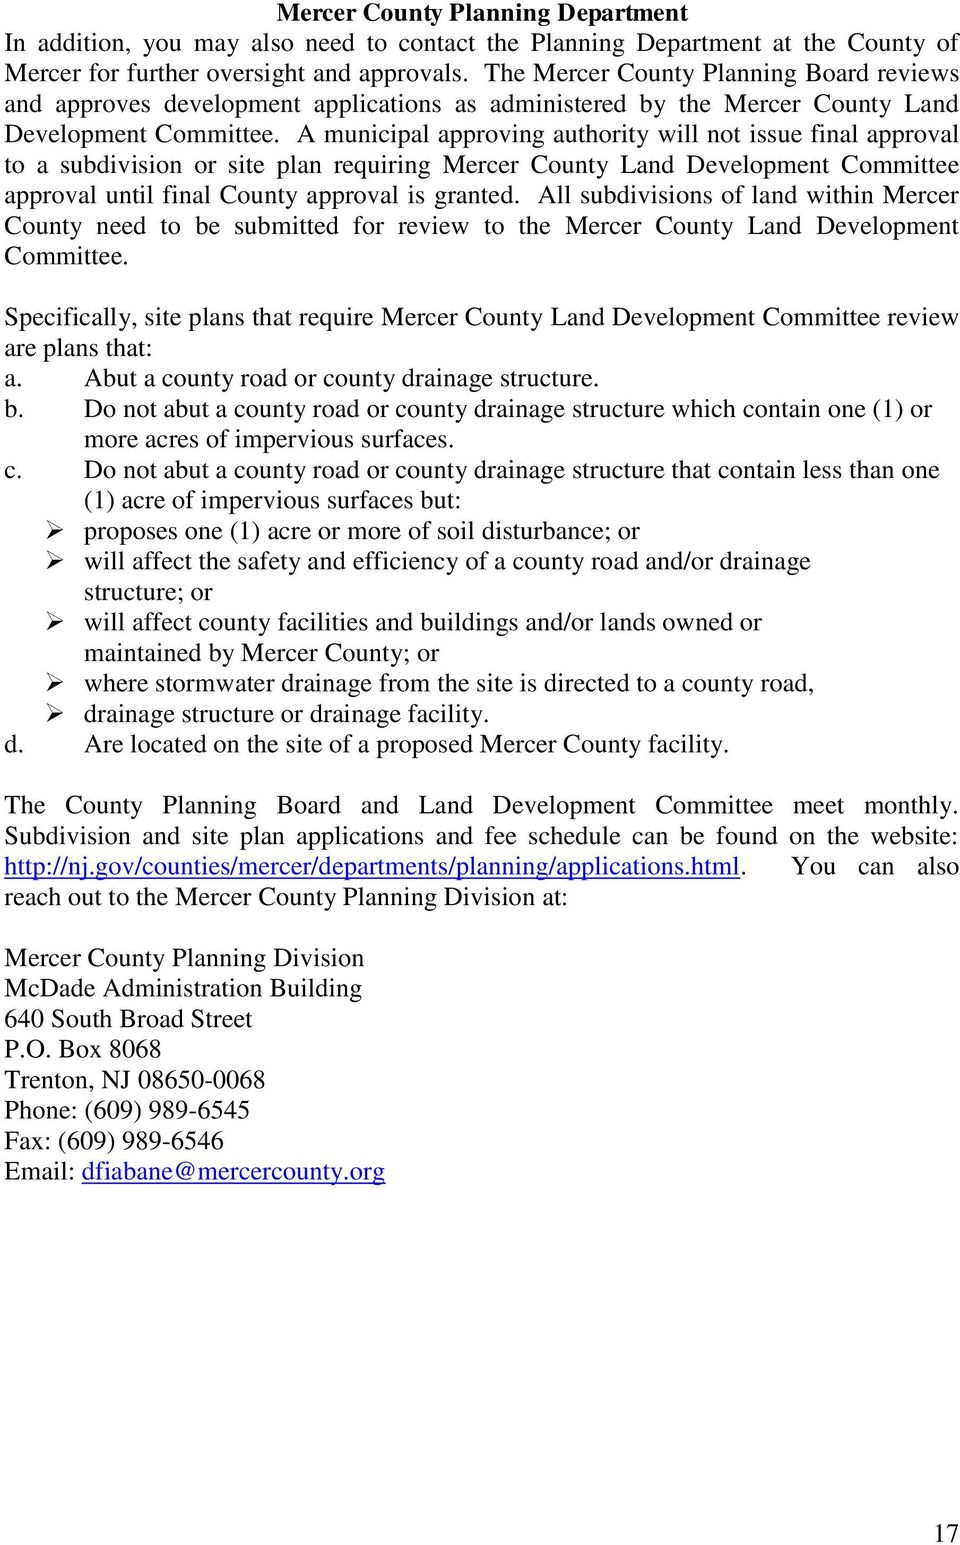 A municipal approving authority will not issue final approval to a subdivision or site plan requiring Mercer County Land Development Committee approval until final County approval is granted.